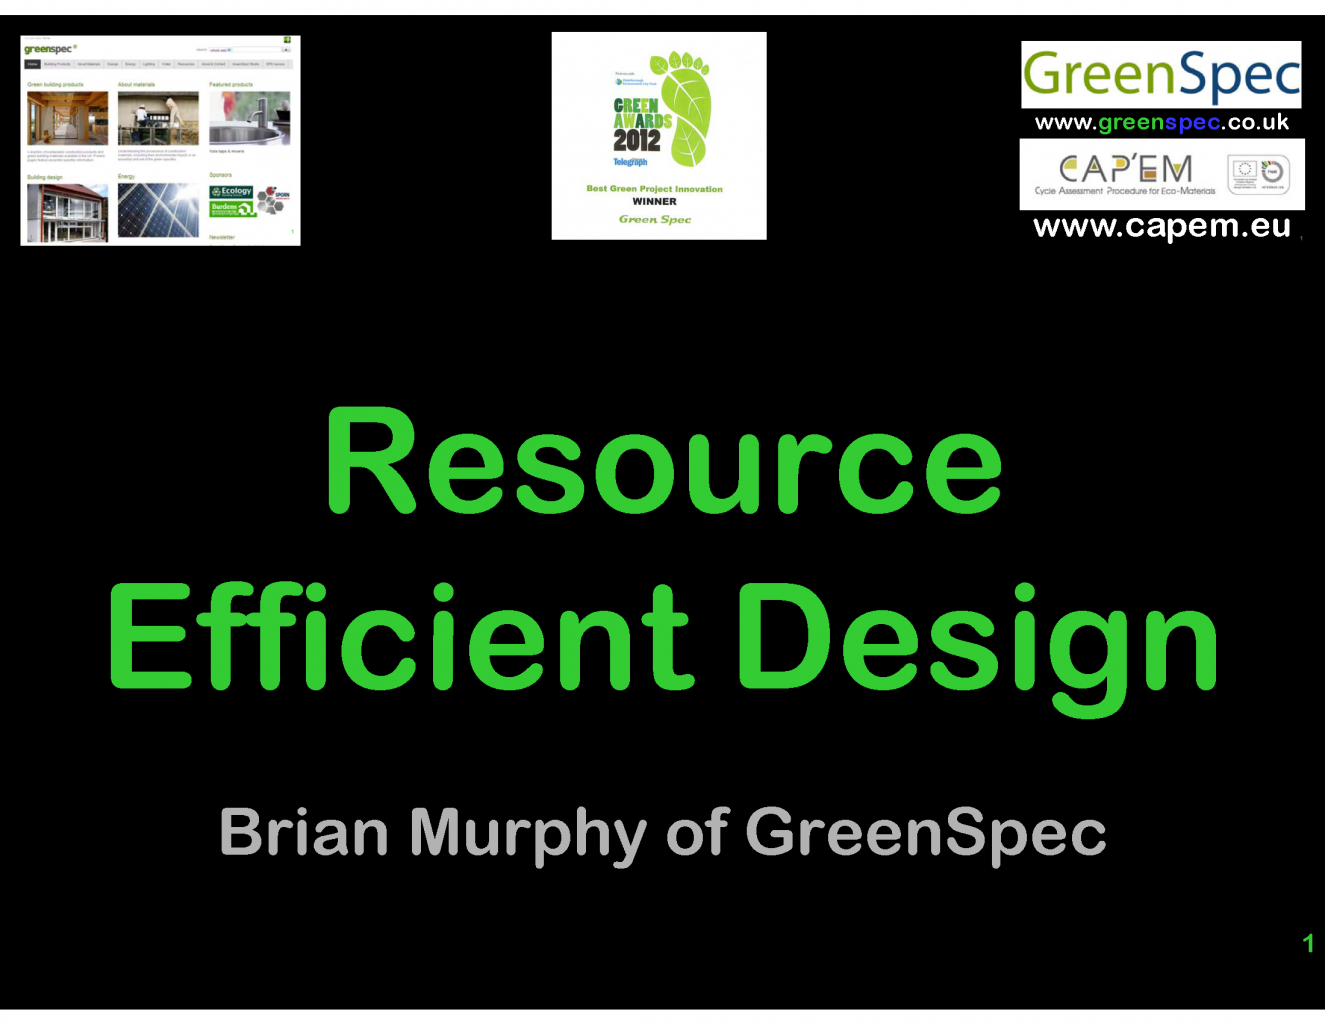 ResourceEfficientDesign_Page_1